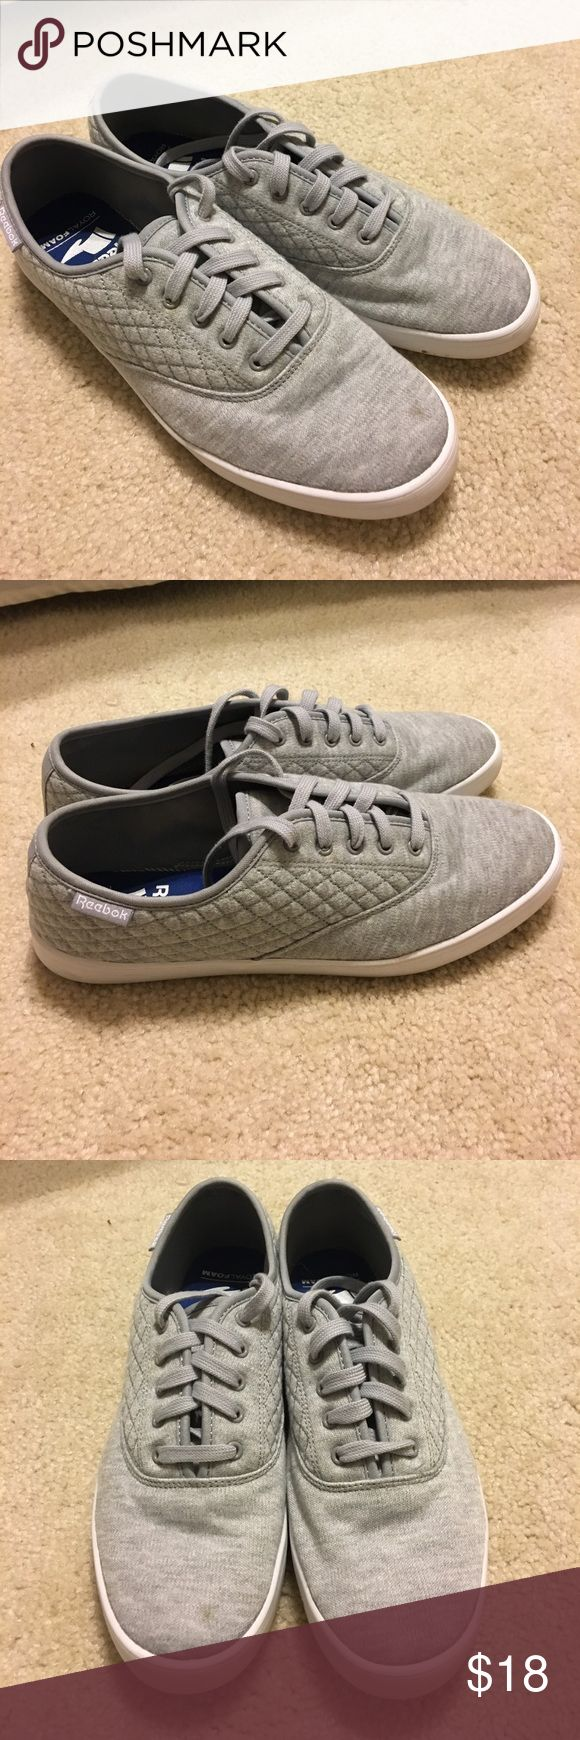 Reebok Royal Tenstall tennis shoe These adorable Reebok tennis shoes are gray in color and quilted on the sides. They feature Reebok's Royal Foam insoles and are so comfortable! They are new and come in the original box. Reebok Shoes Sneakers